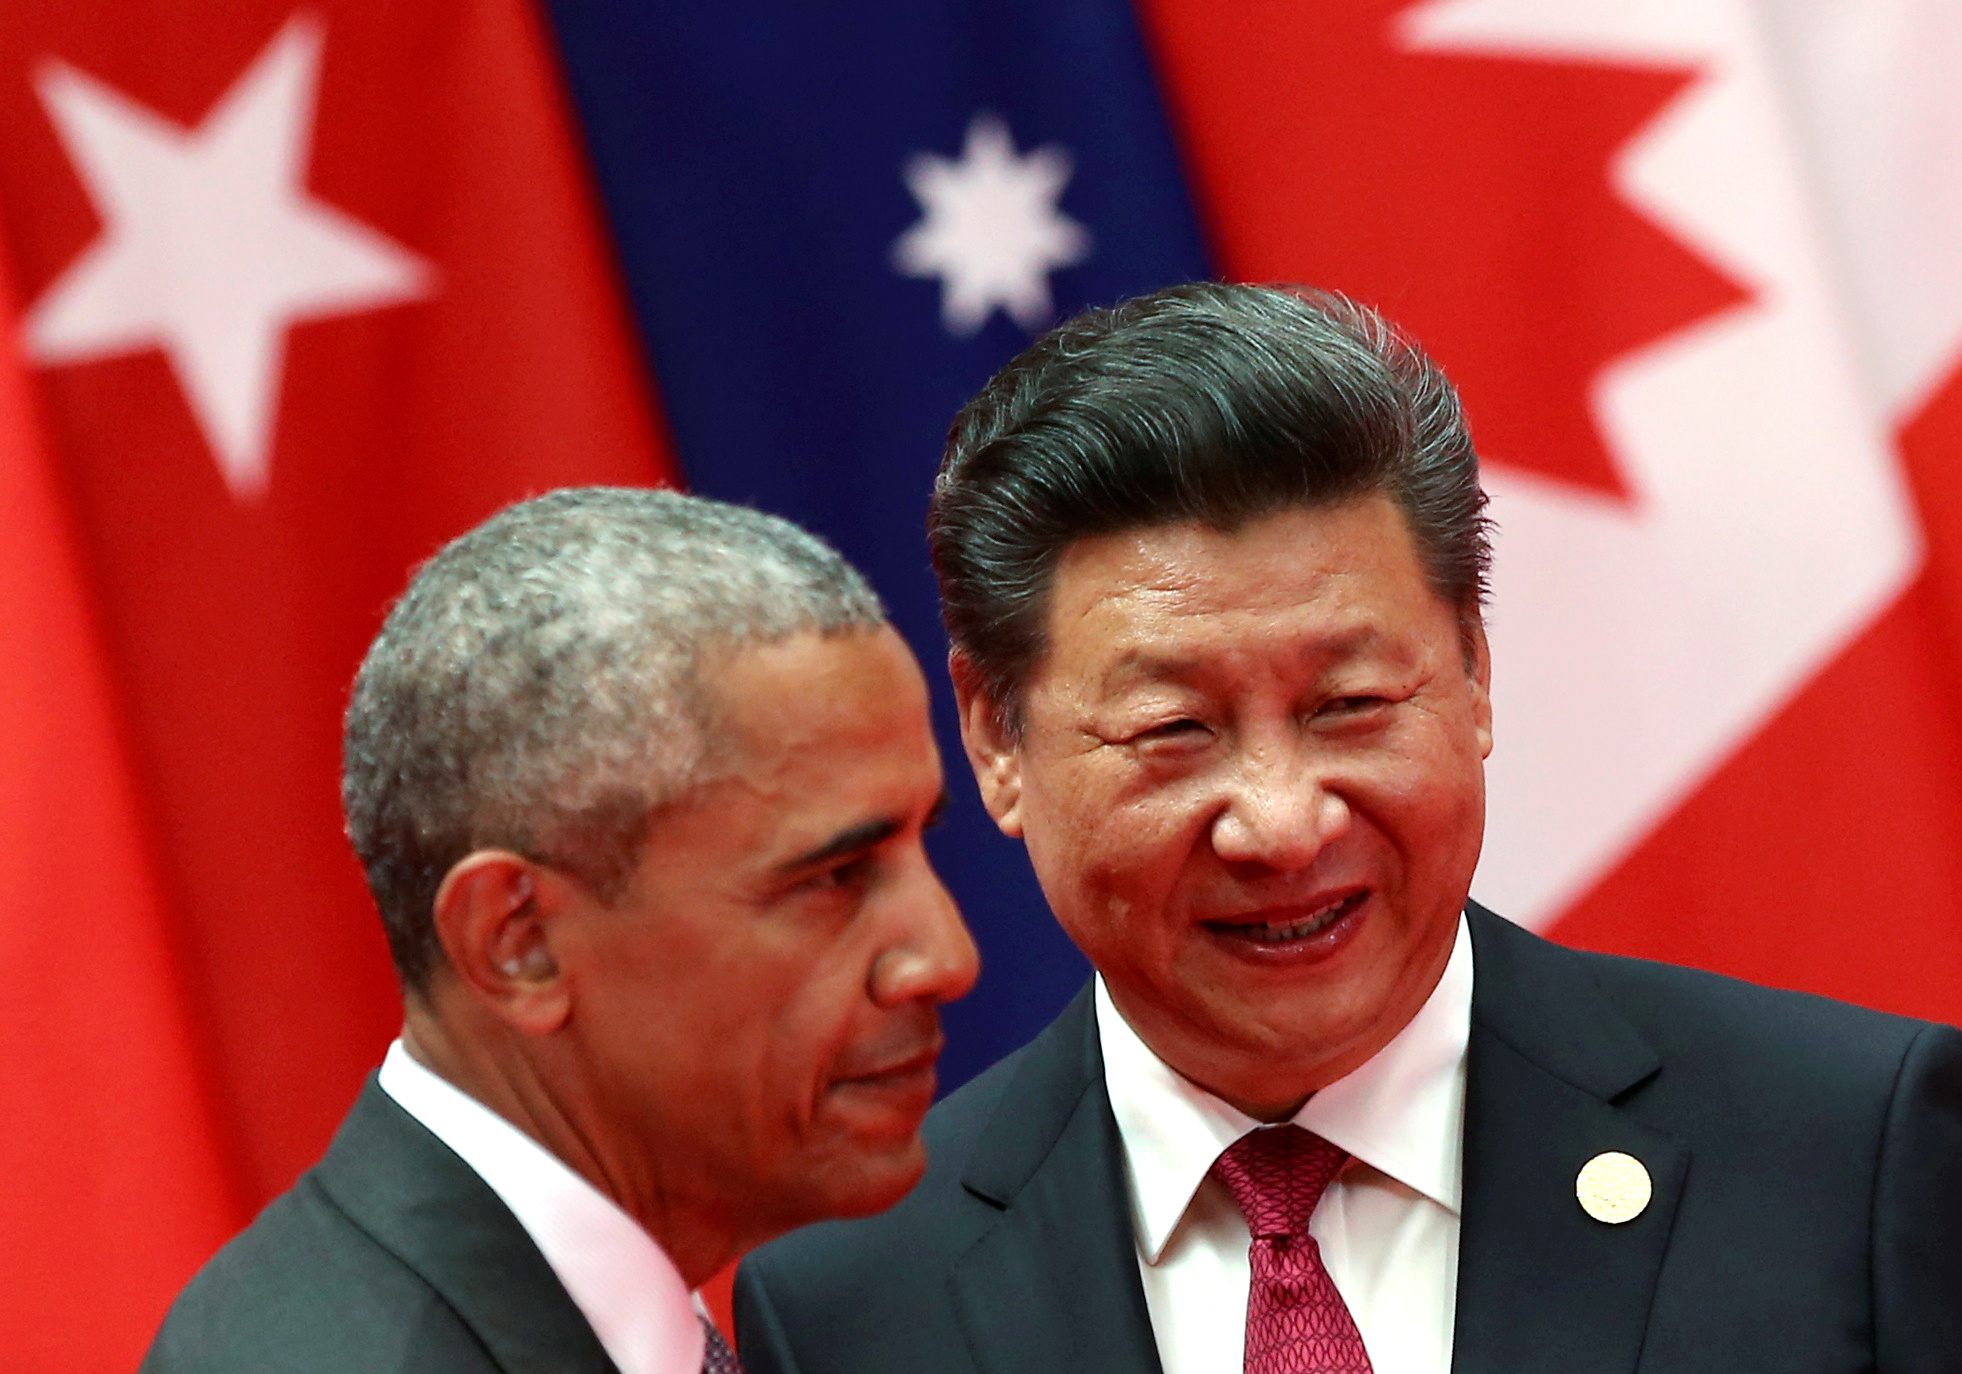 Chinese President Xi Jinping, right, and U.S. President Barack Obama attend the G-20 summit in Hangzhou, China, on Sept. 4, 2016